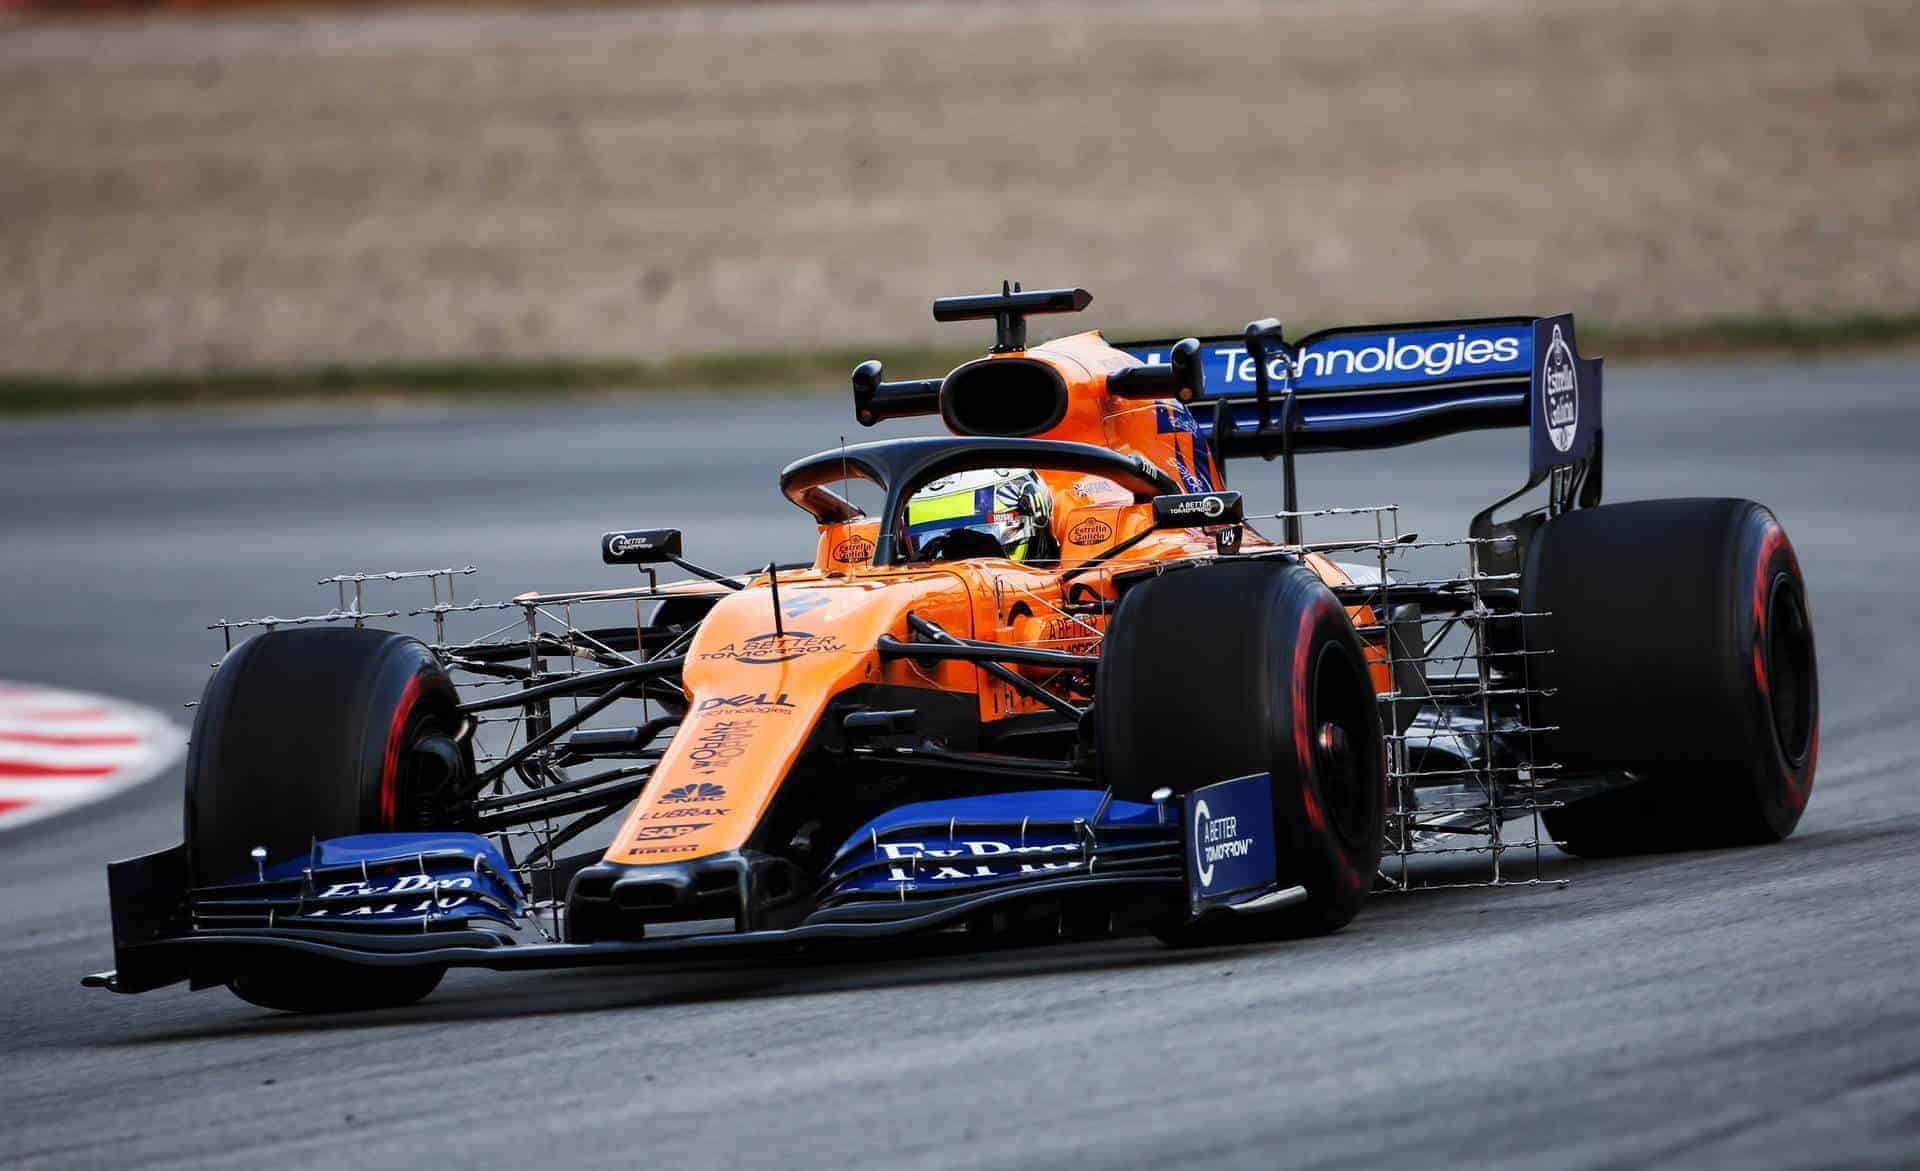 Lando Norris McLaren MCL34 Barcelona test 1 day 2 Photo Sky F1 Ferrari